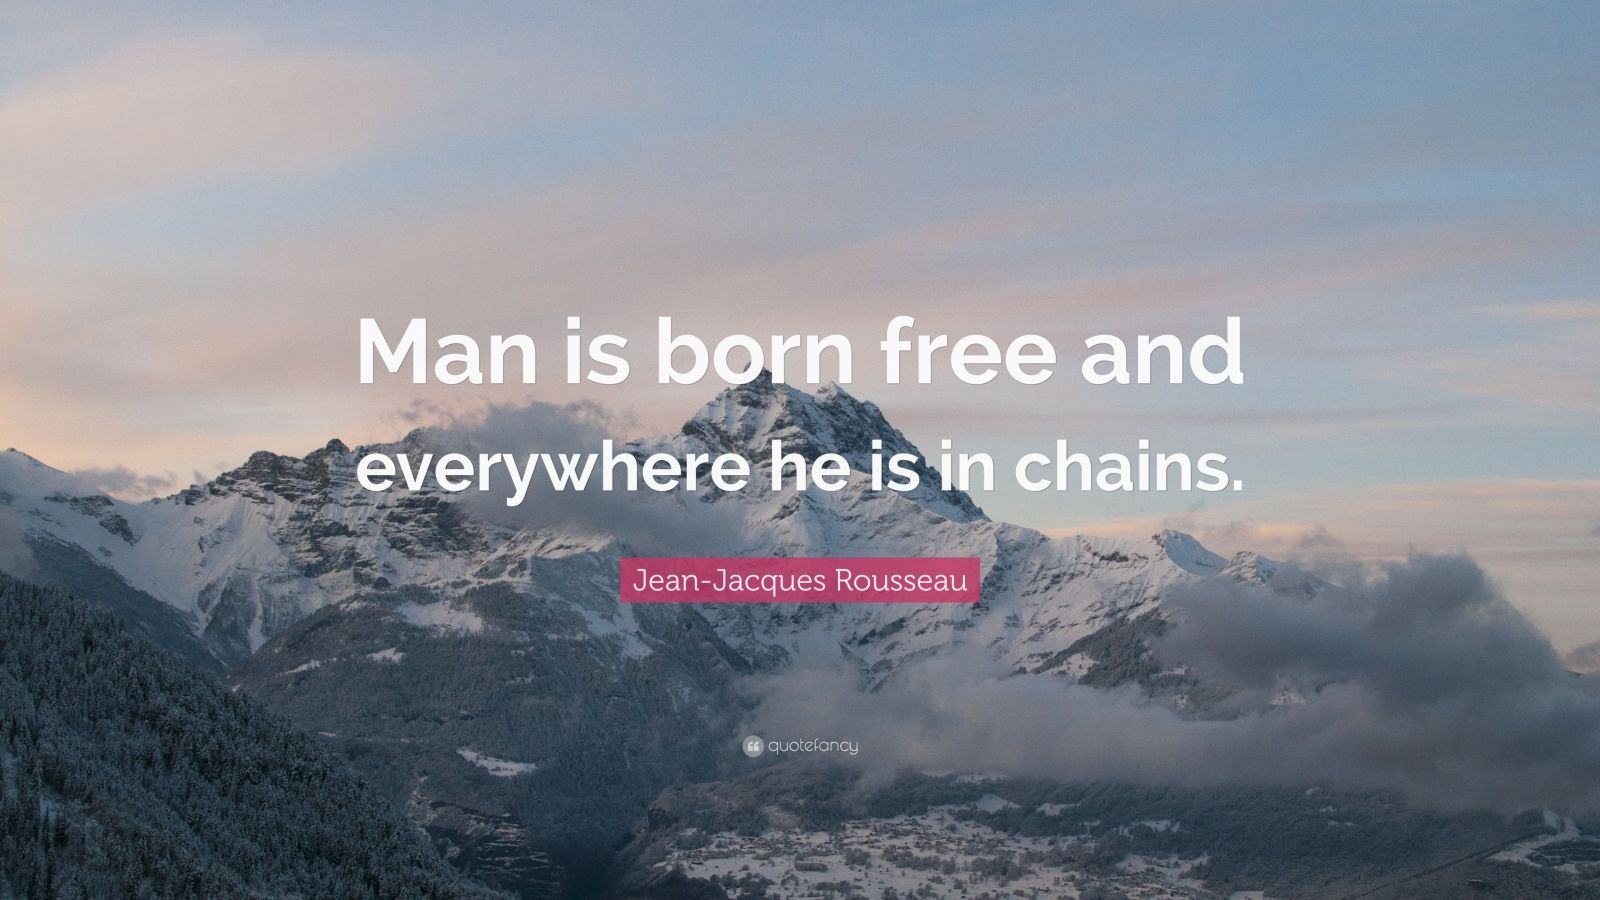 jean jacques rousseau man is born free and everywhere he is in chains May you find great value in these man is born free, and everywhere he is in shackles  by jean jacques rousseau from my large inspirational quotes and sayings database.